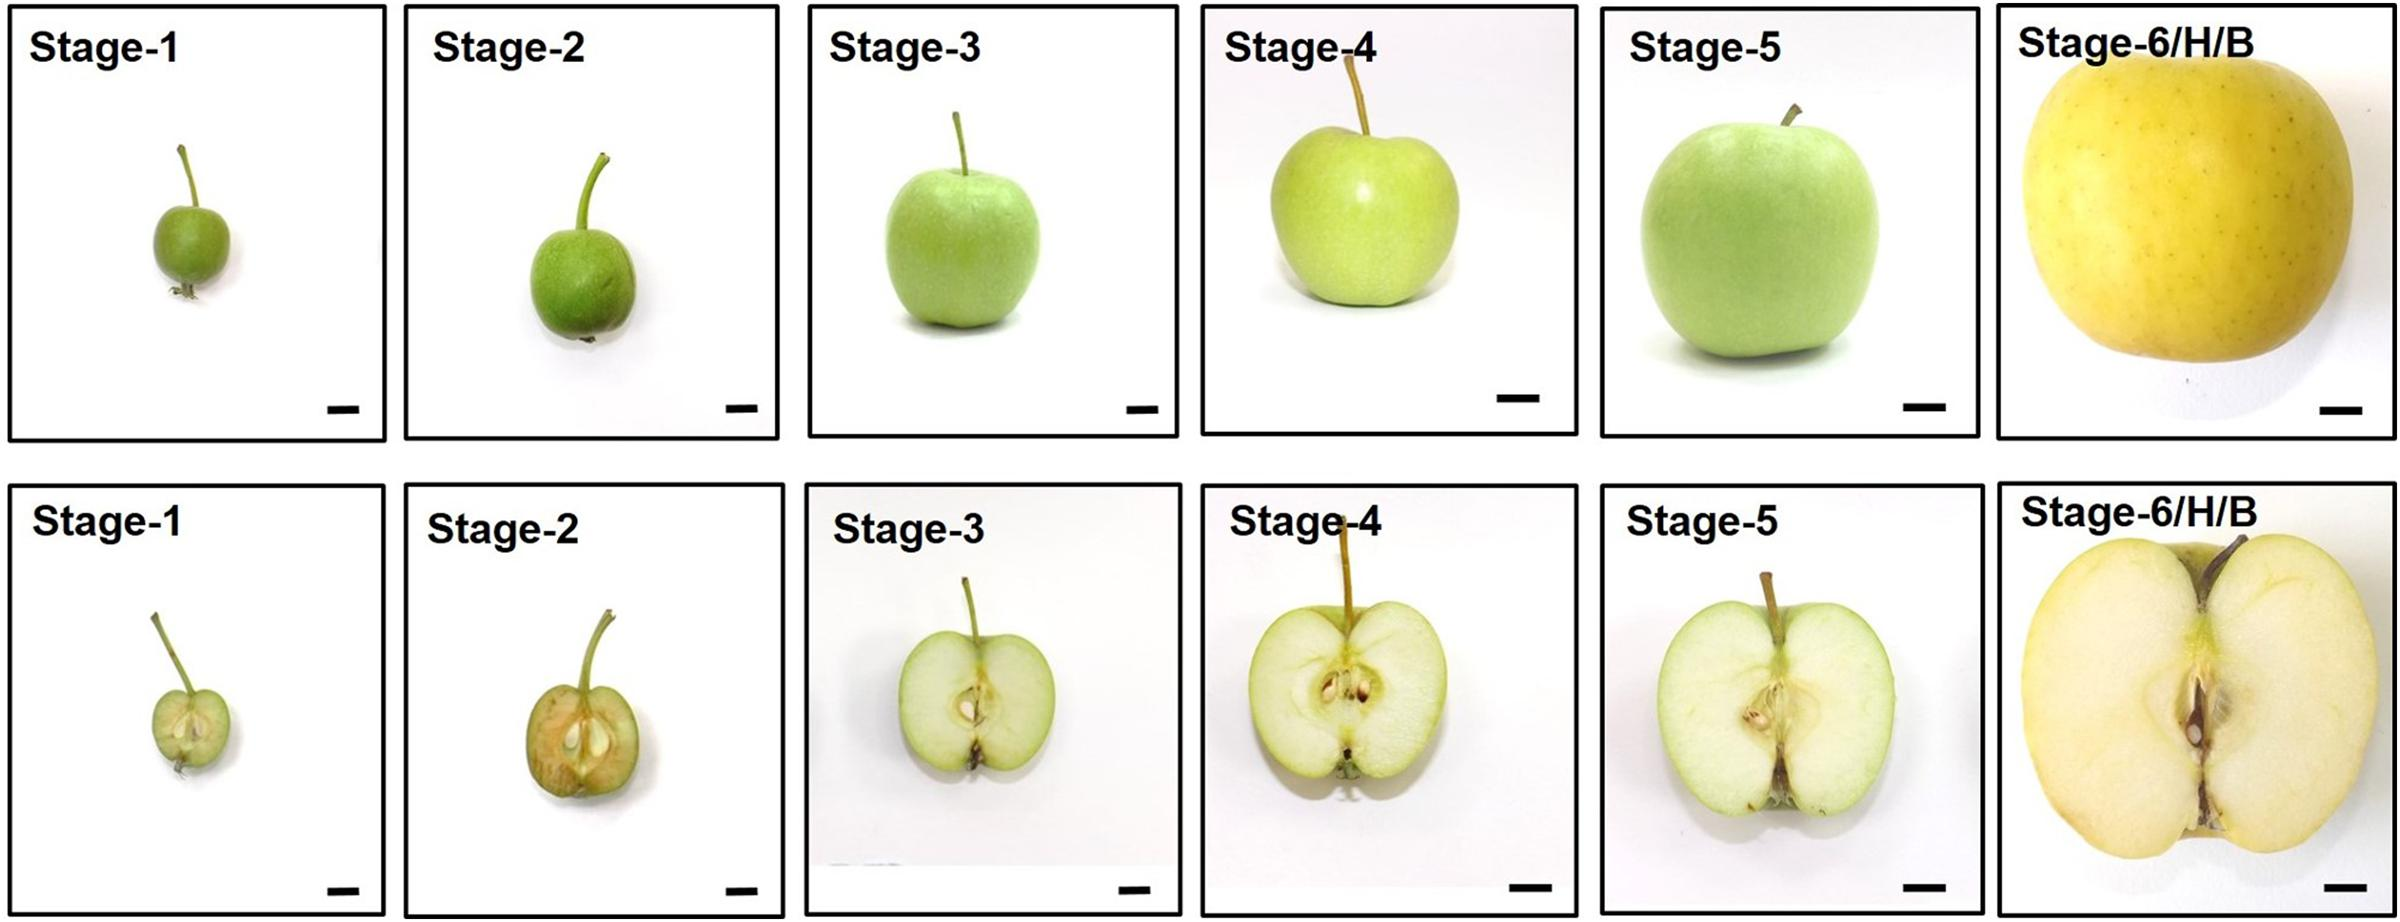 Frontiers | Different Preclimacteric Events in Apple Cultivars with